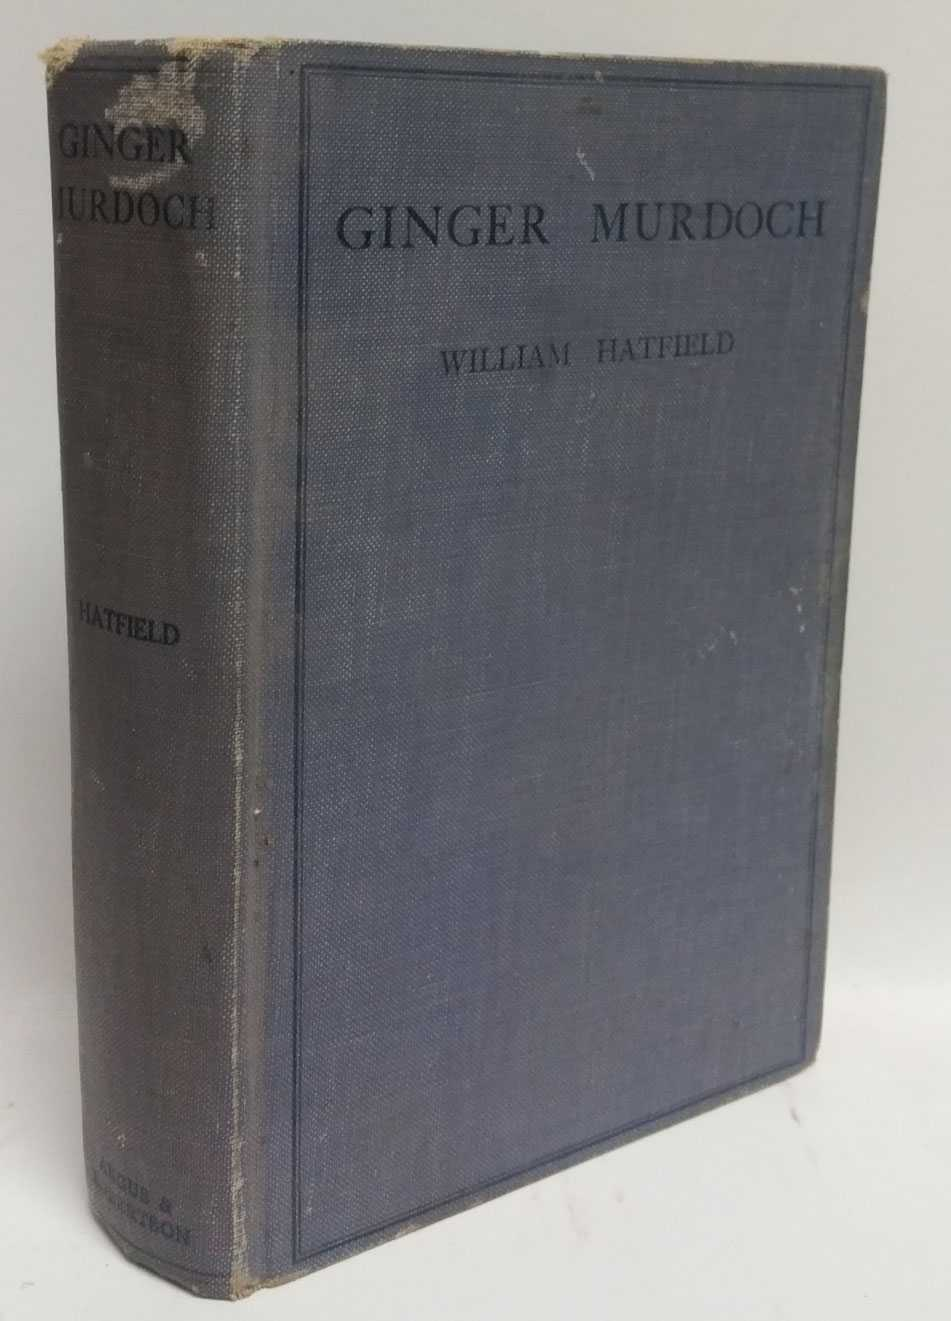 Ginger Murdoch, William Hatfield